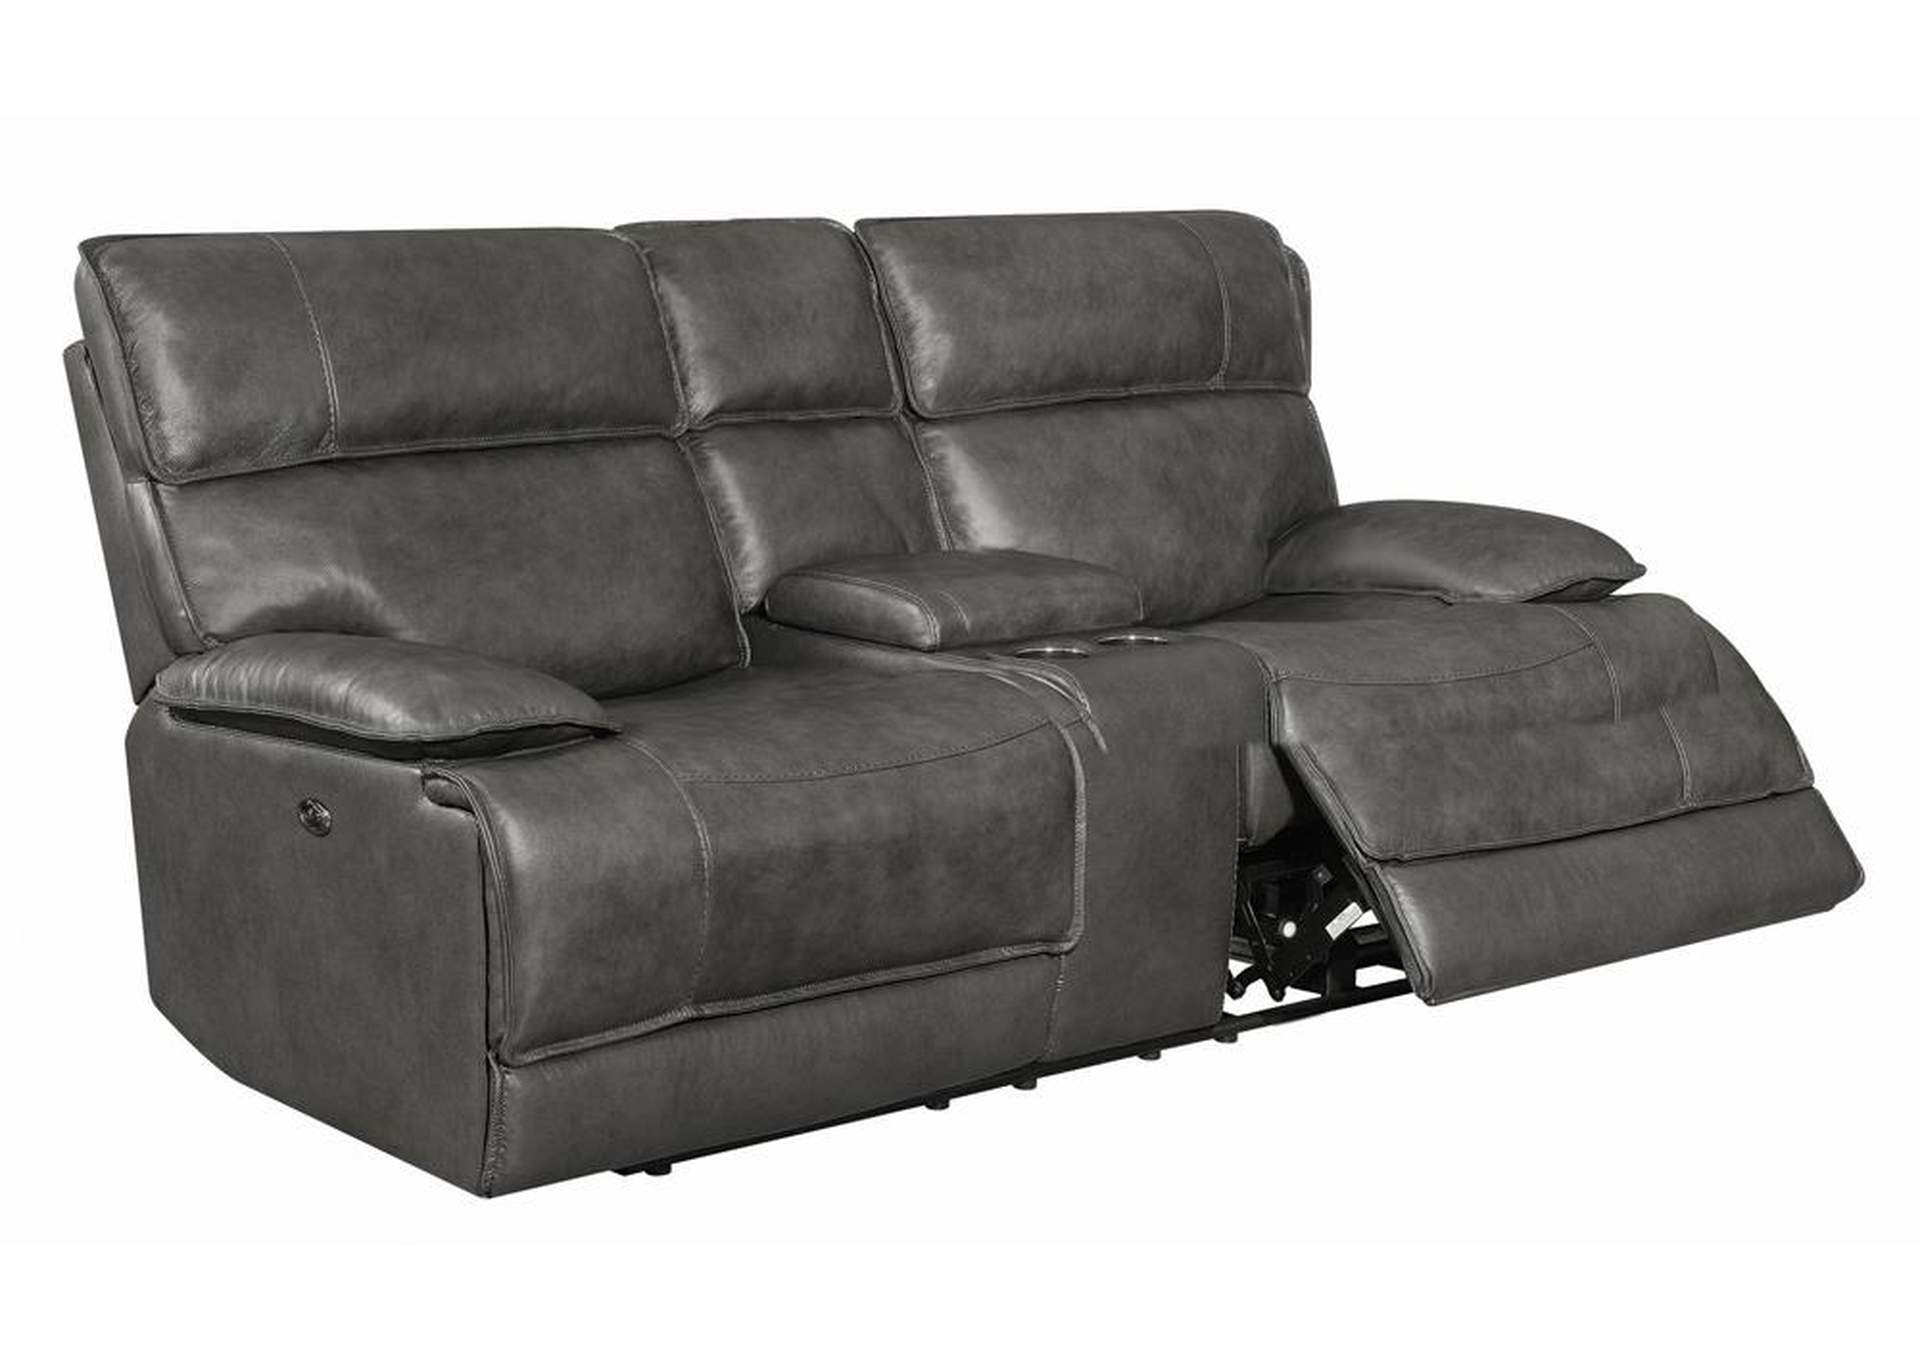 Fuscous Gray Standford Casual Charcoal Power Loveseat,Coaster Furniture